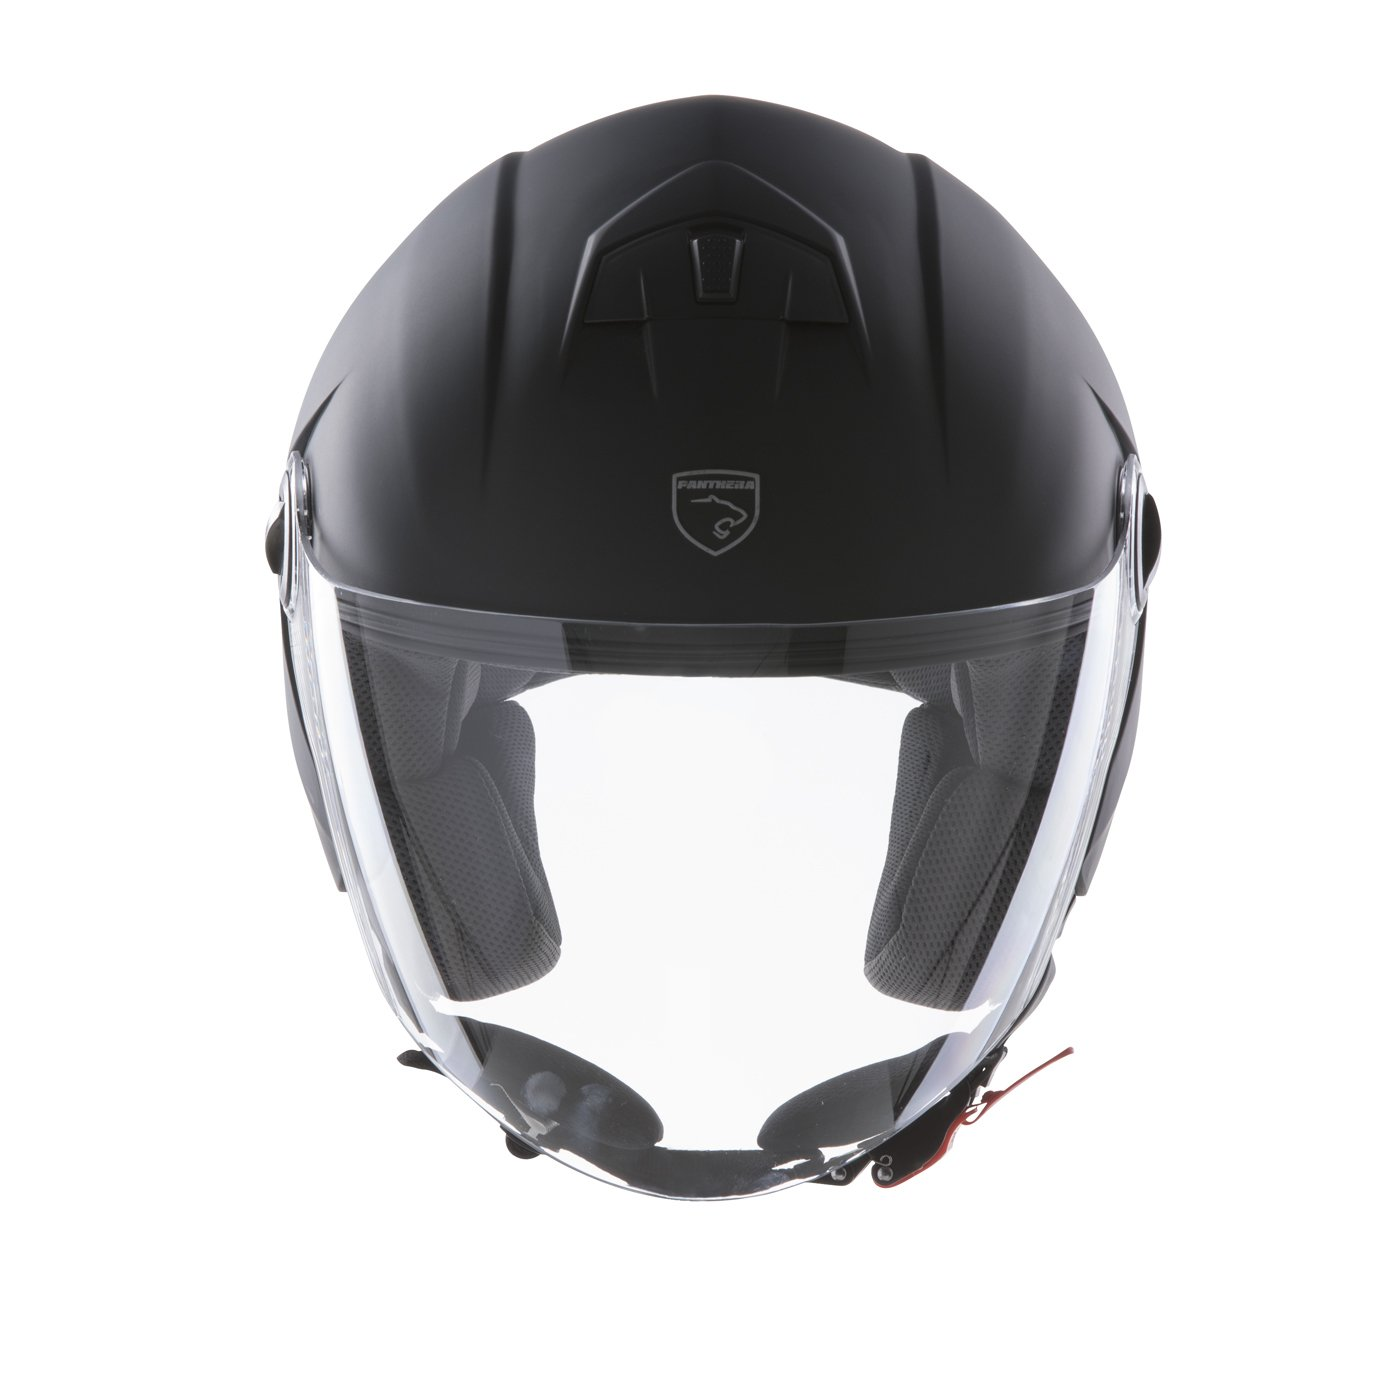 Panthera casque moto full jet Trendy blanc brillant taille L Rider Valley FS715L-WHL